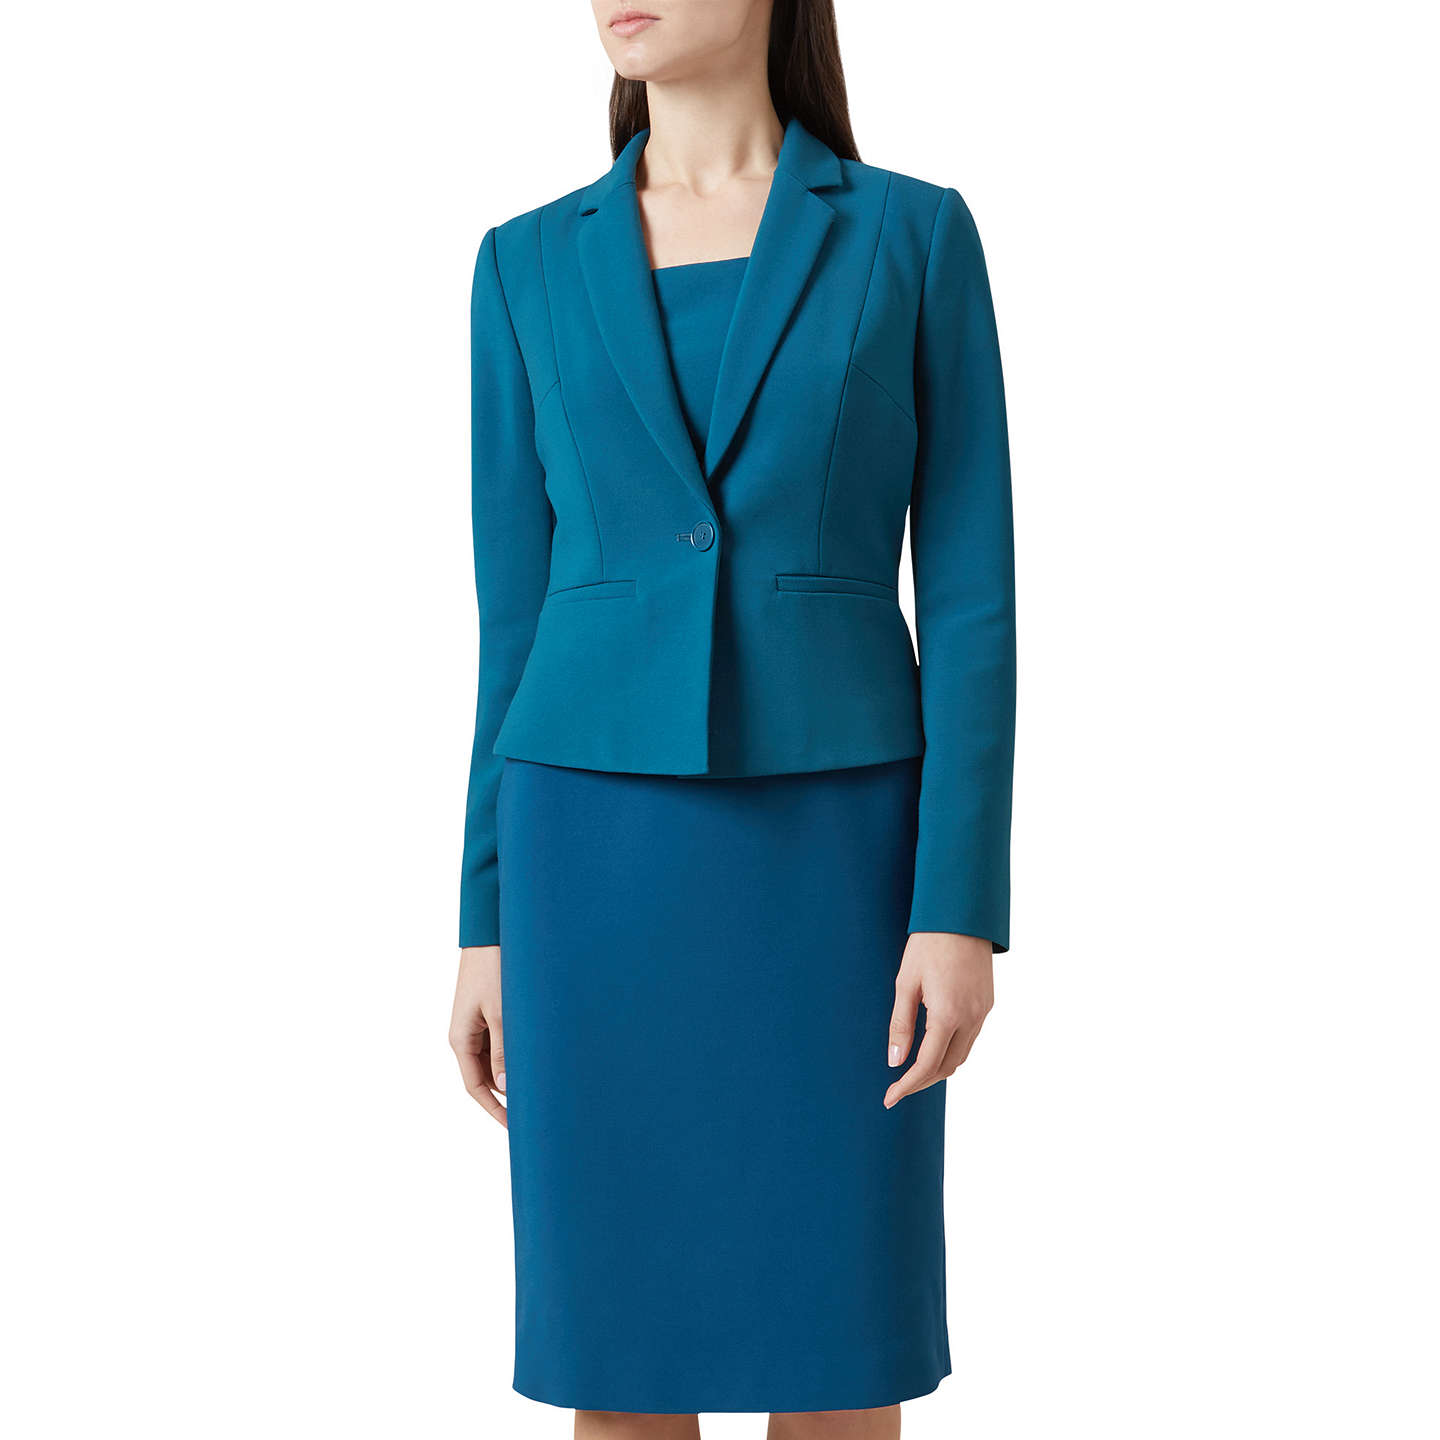 Offer: Hobbs Catriona Jacket, Blue at John Lewis